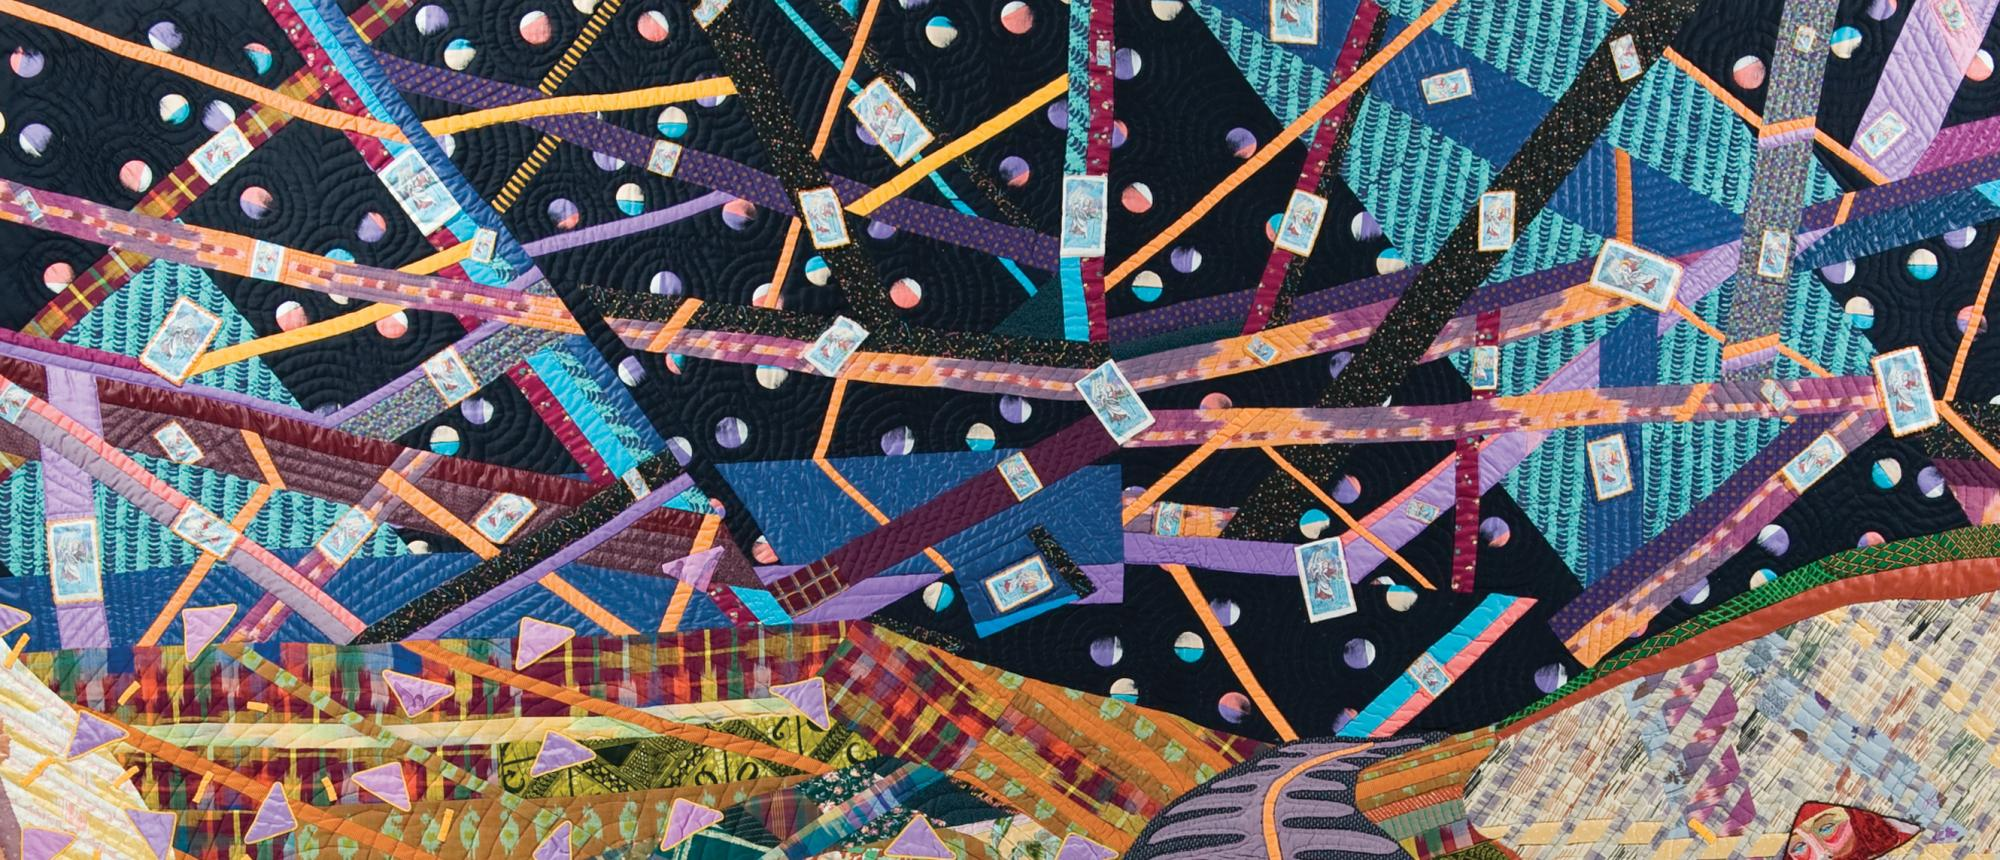 Revisiting the Art Quilt